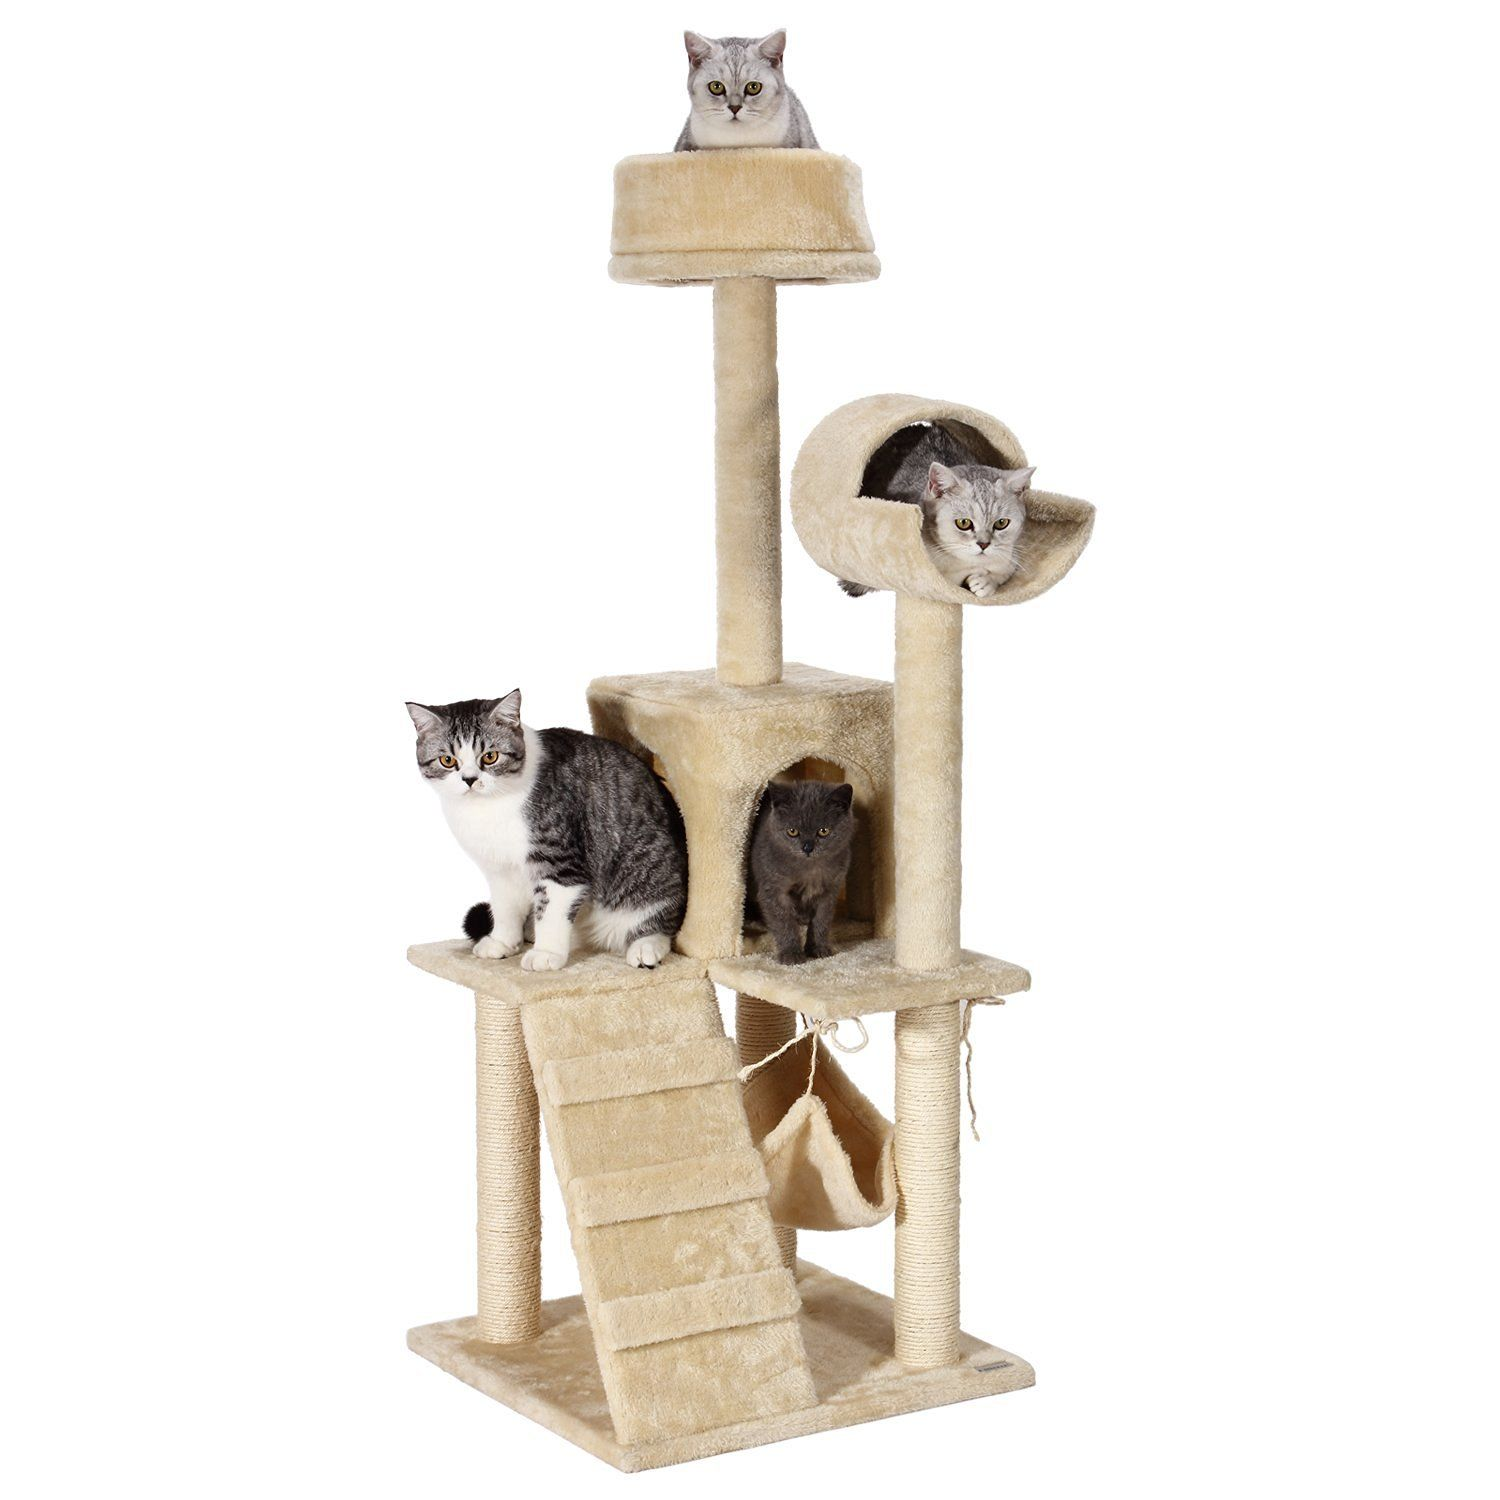 Ollieroo 52 Pet Kittens Cat Tree Condo Furniture Scratching Post Cat Kitten House Small Great For Kittens You Can Fin Cat Tree Plans Pet Kitten Kitten House